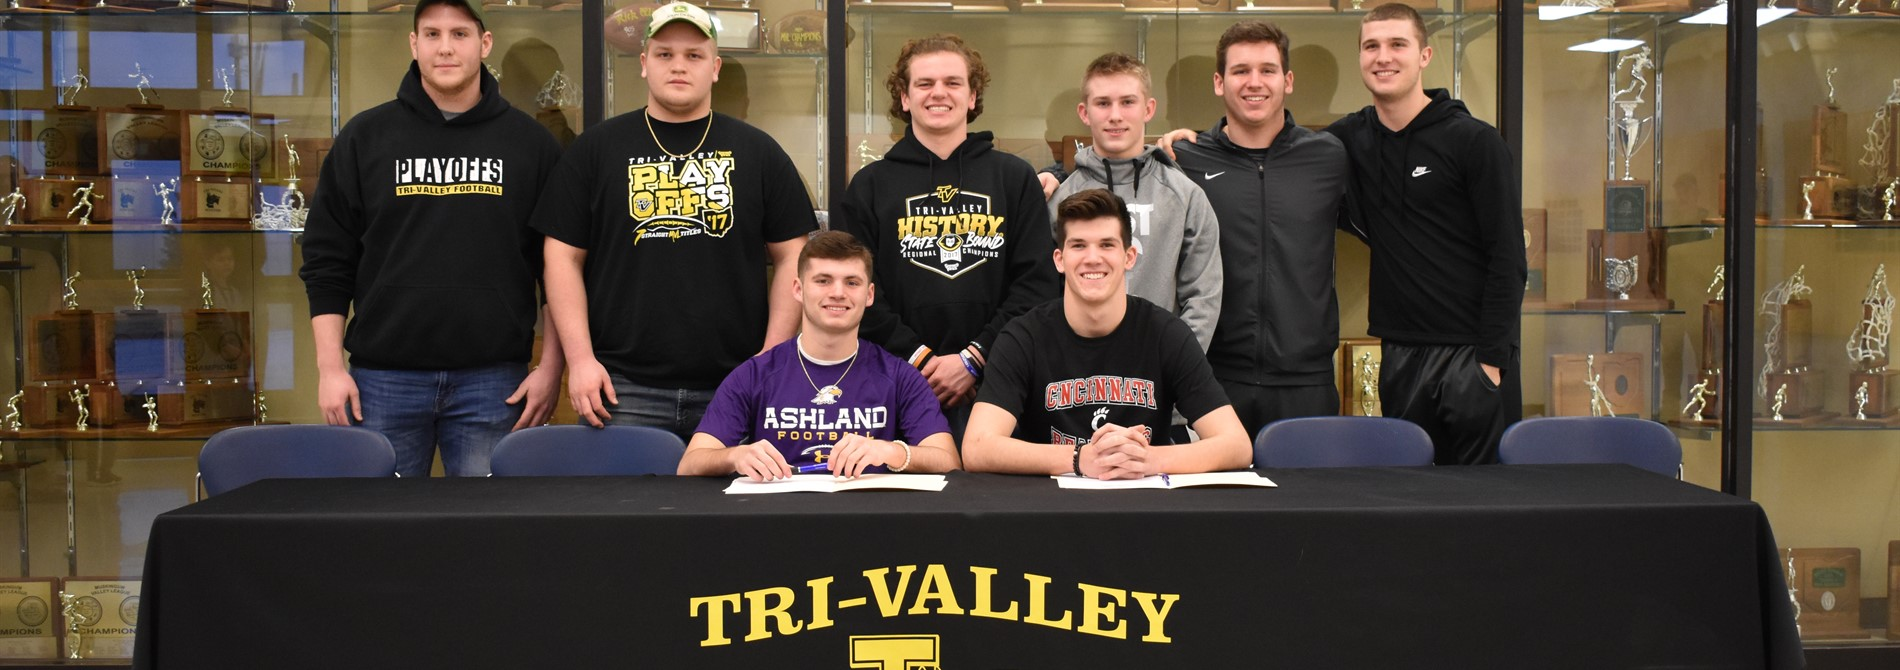 Chase Dinan signs with Ashland University.    .    . Nathan Lawler signs with the University of Cincinnati.